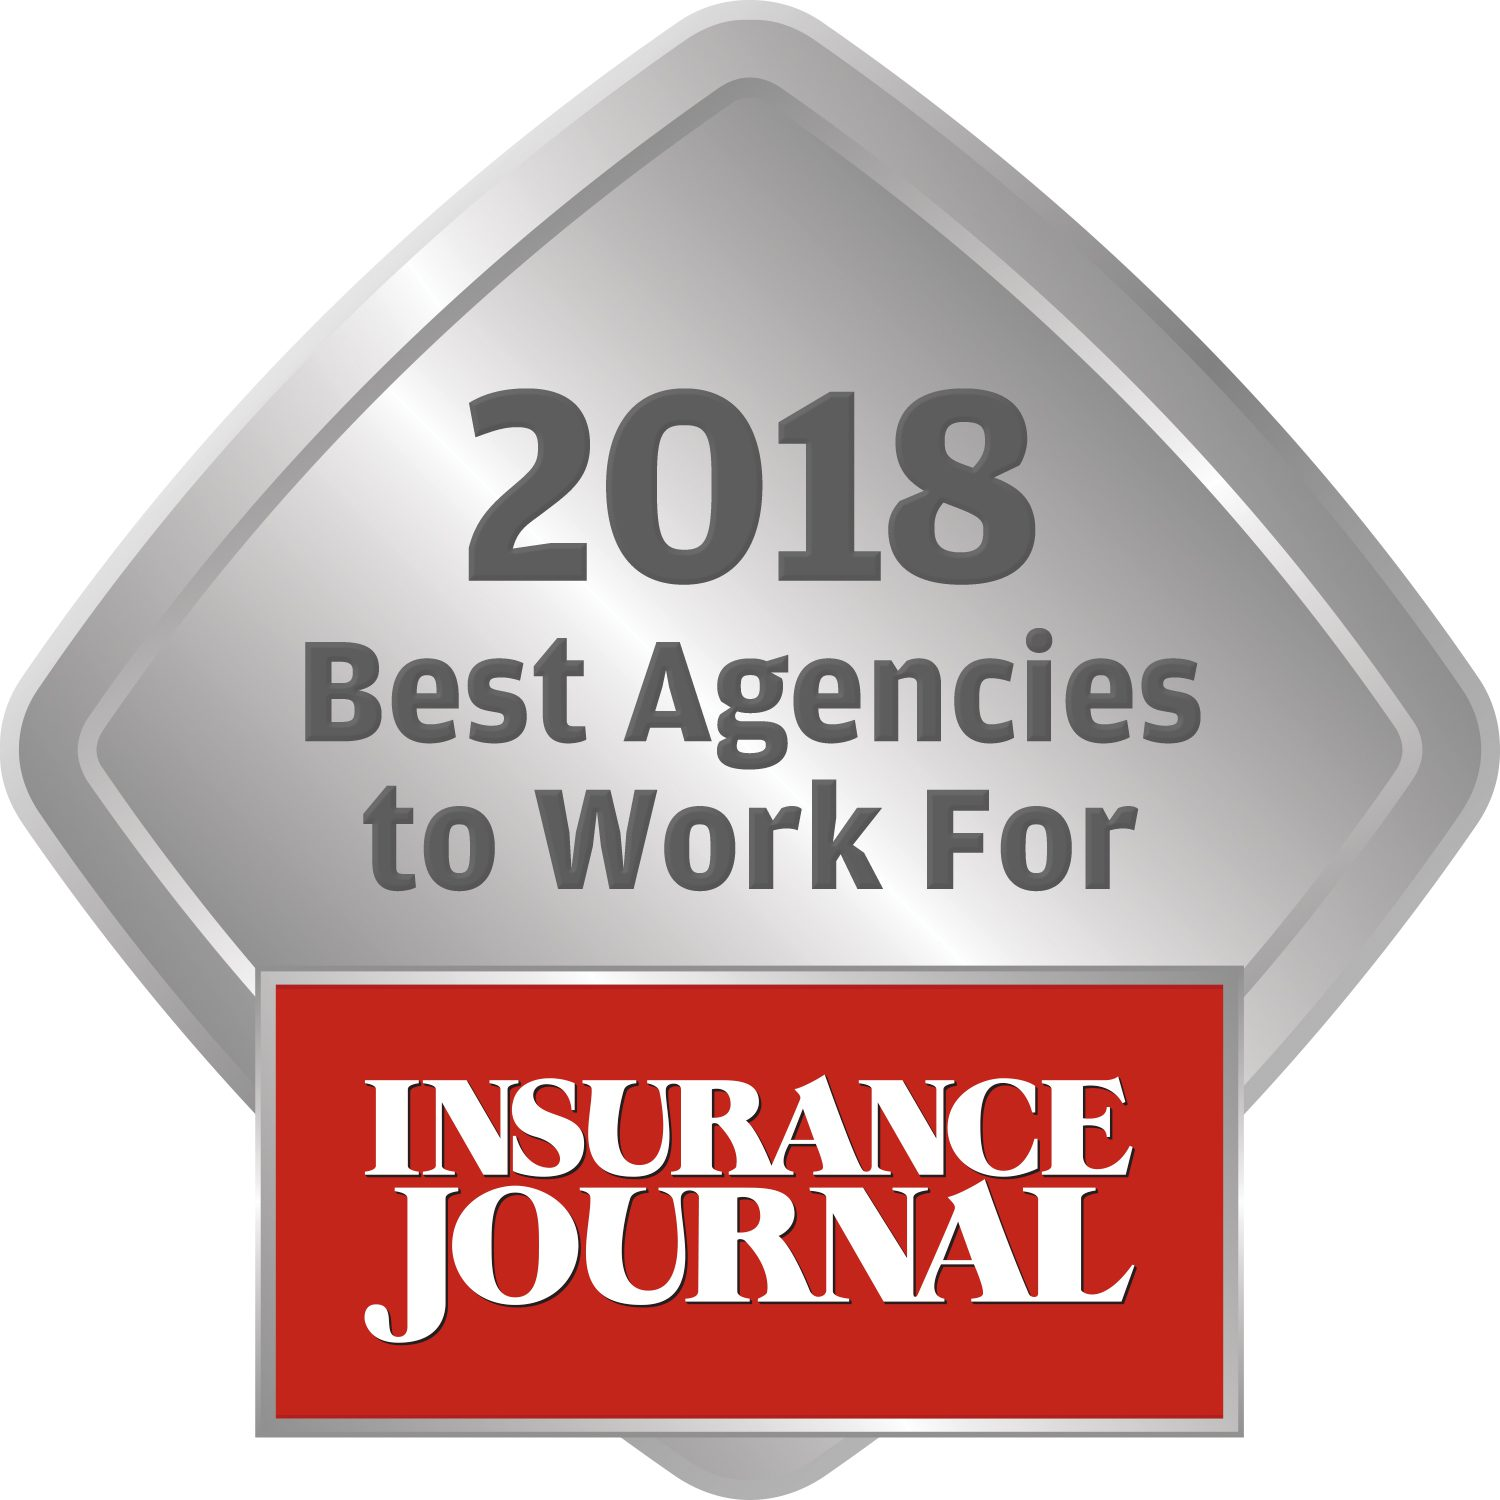 Insurance Journal Award, 2018 Best Agencies to Work For